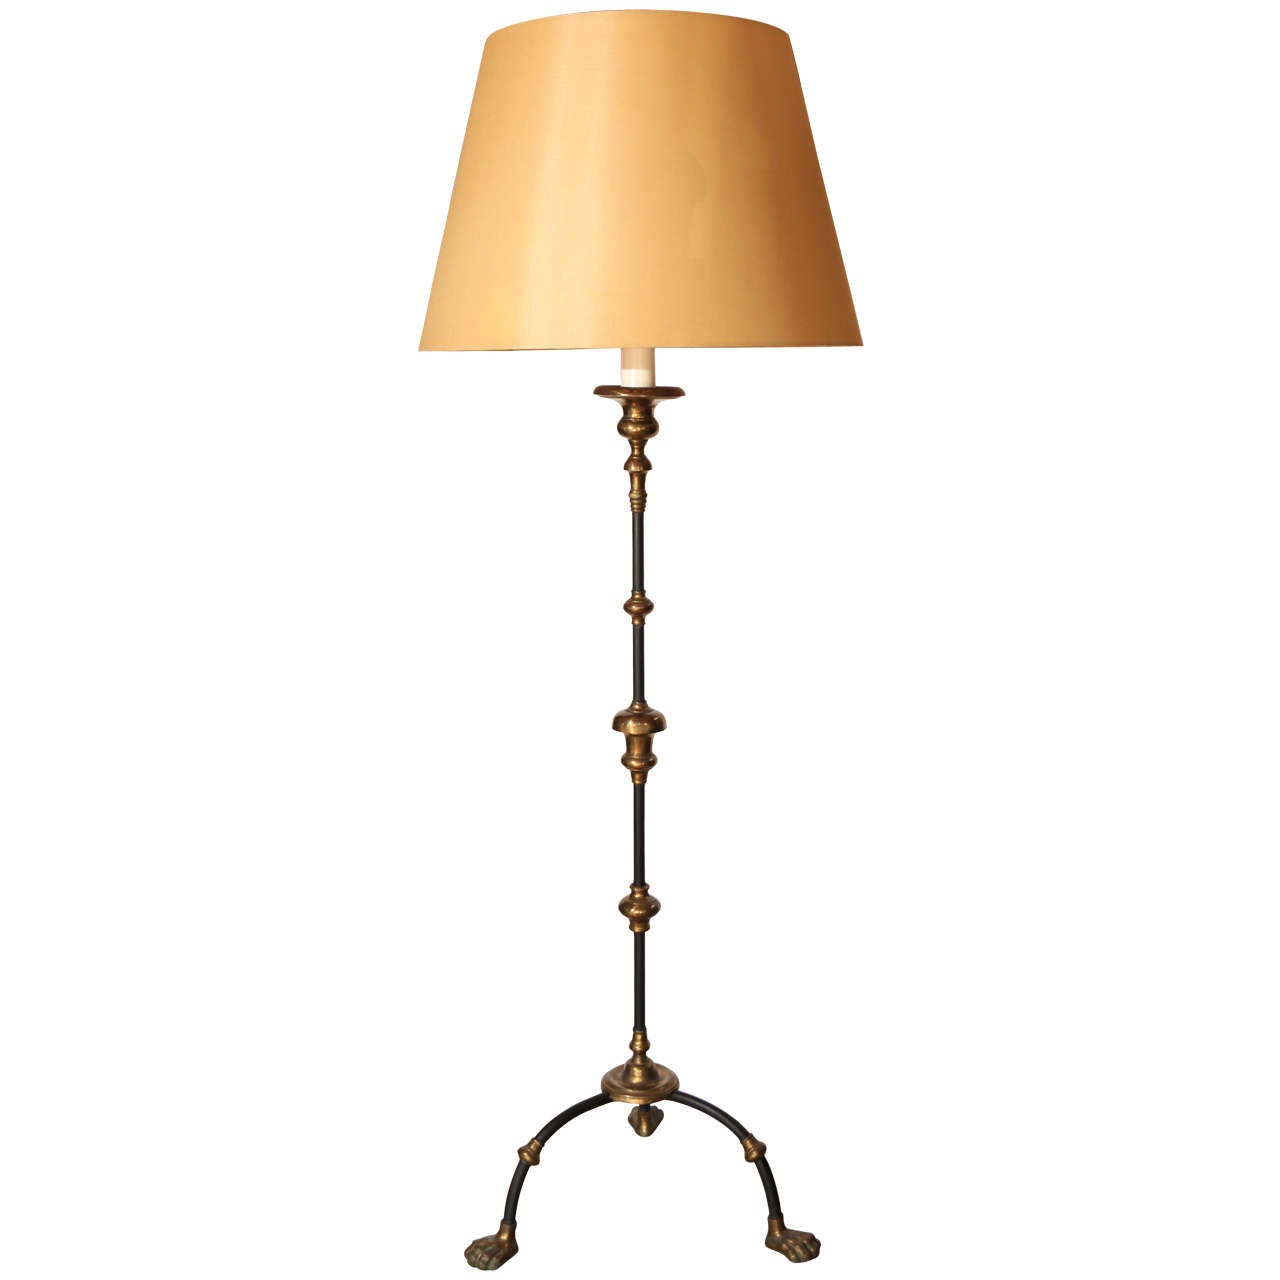 Italian Hollywood Regency Floor Lamp